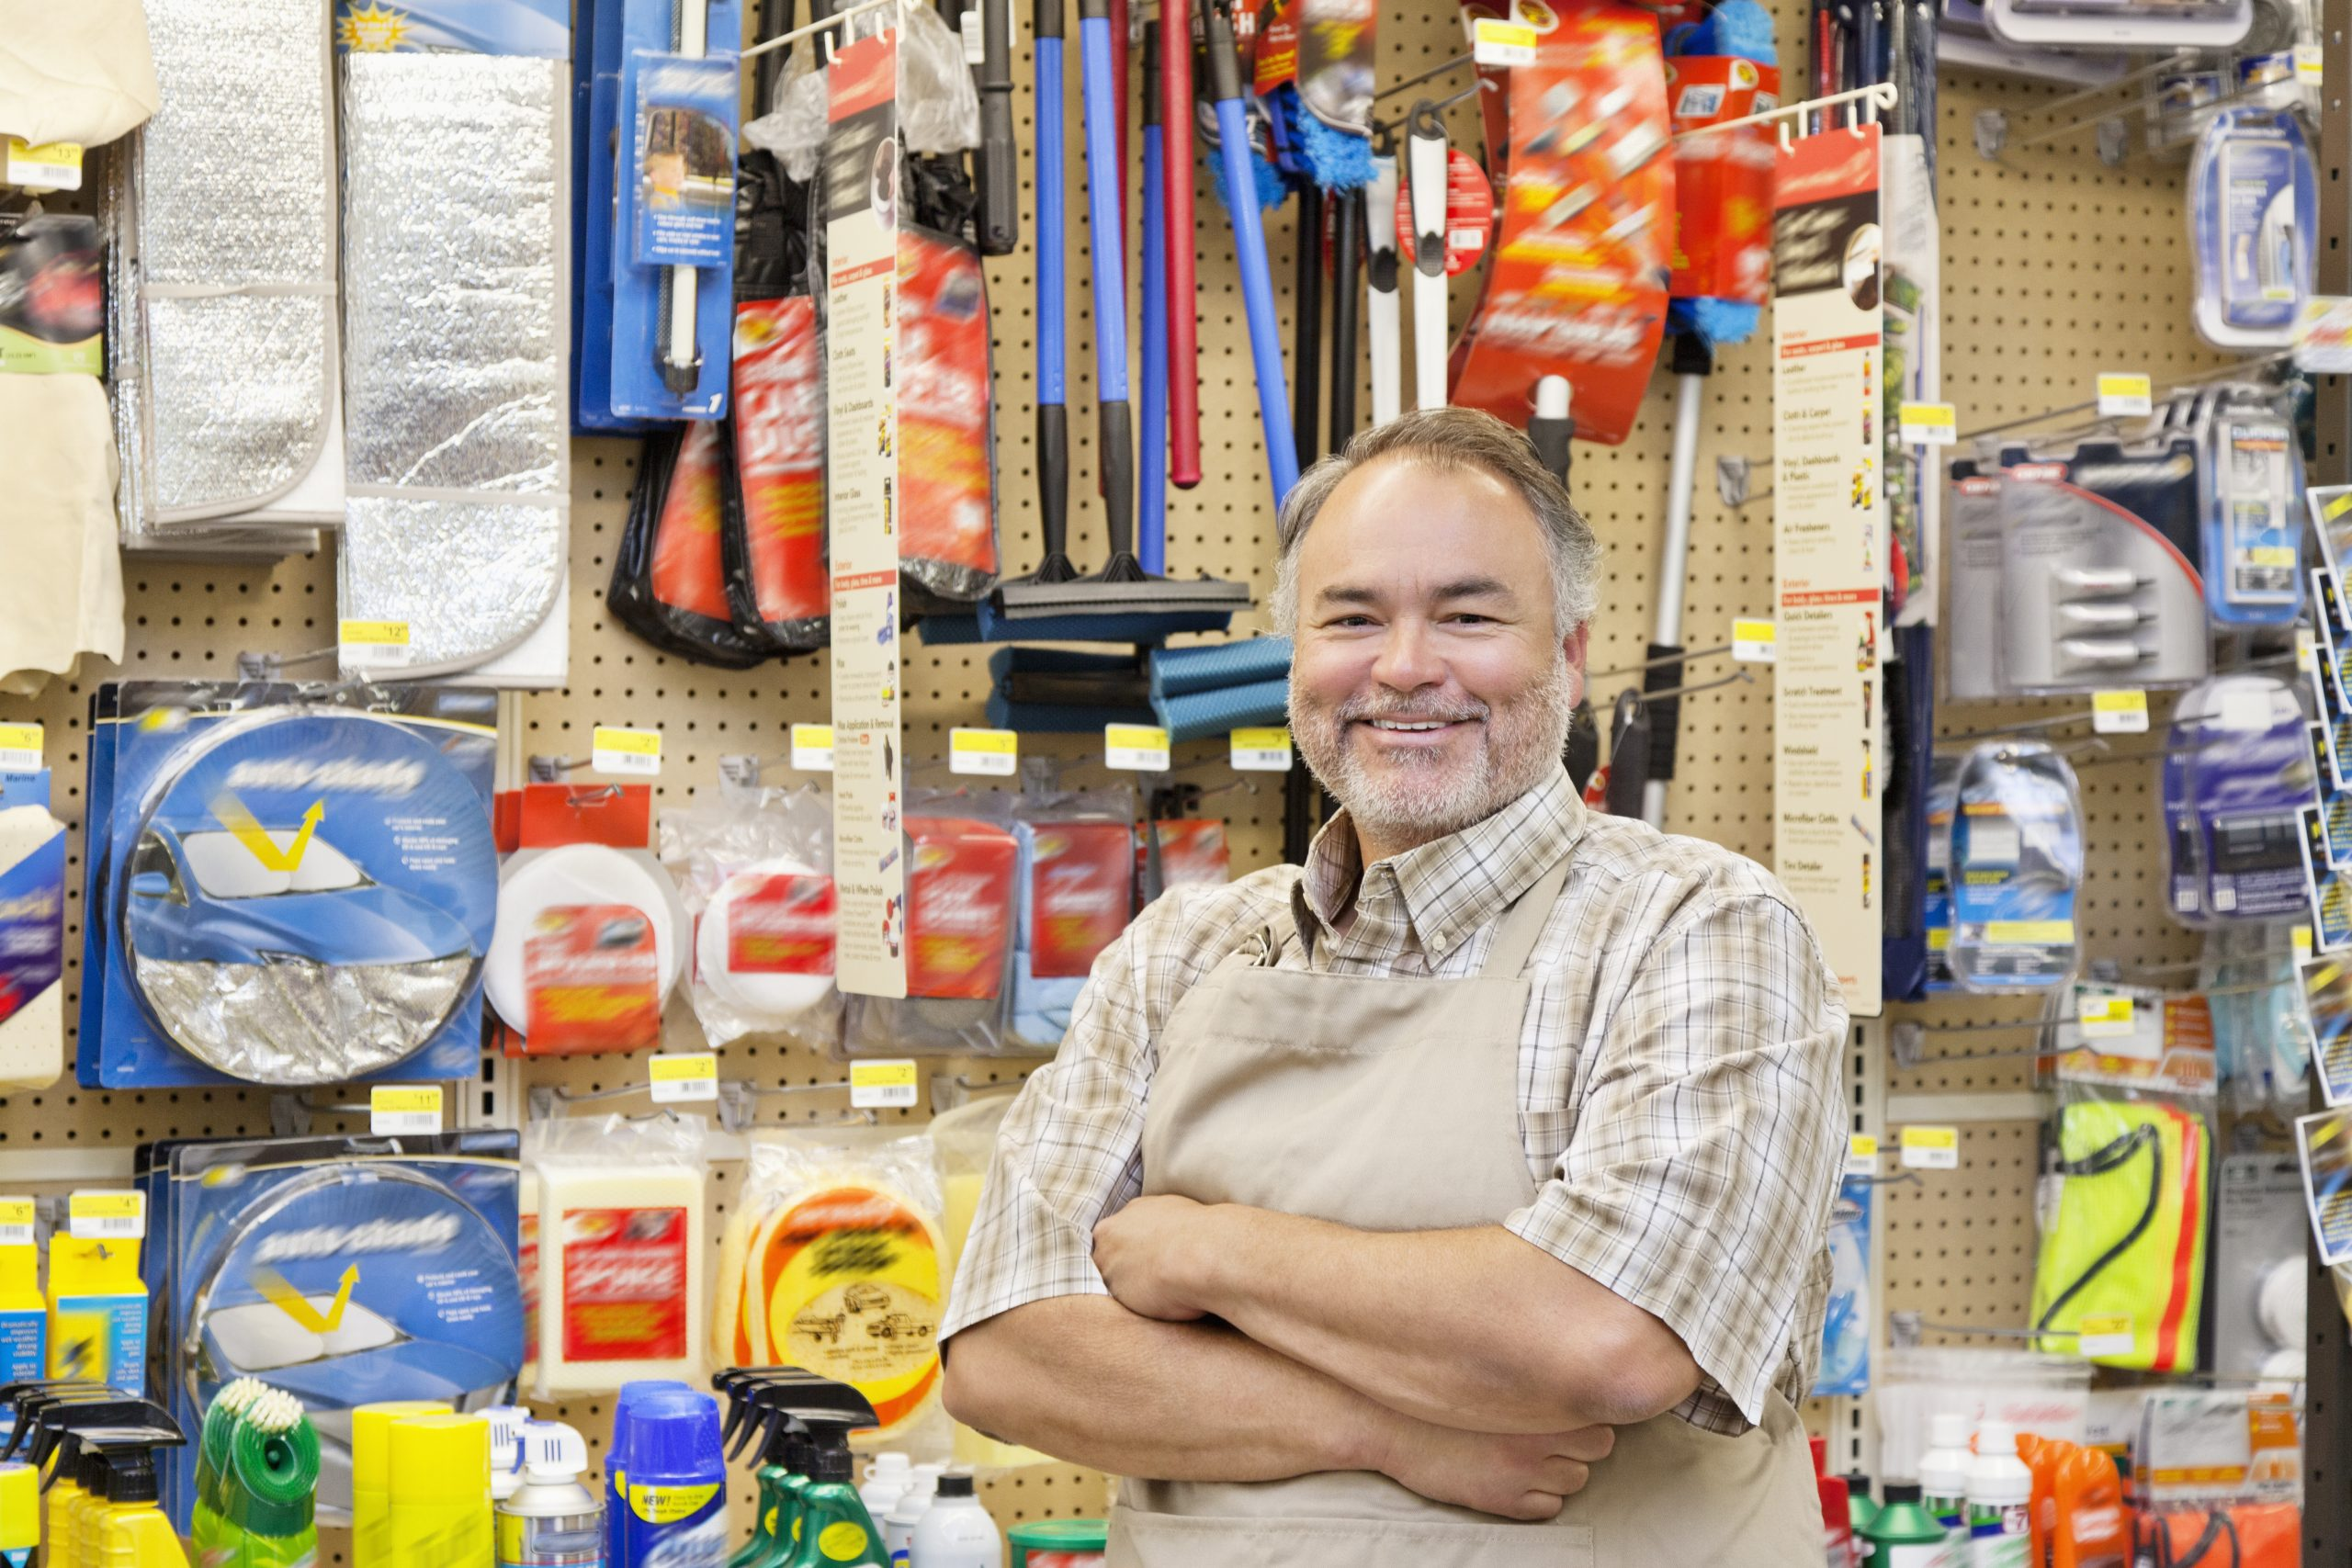 Business owner smiling in front of merchandise.